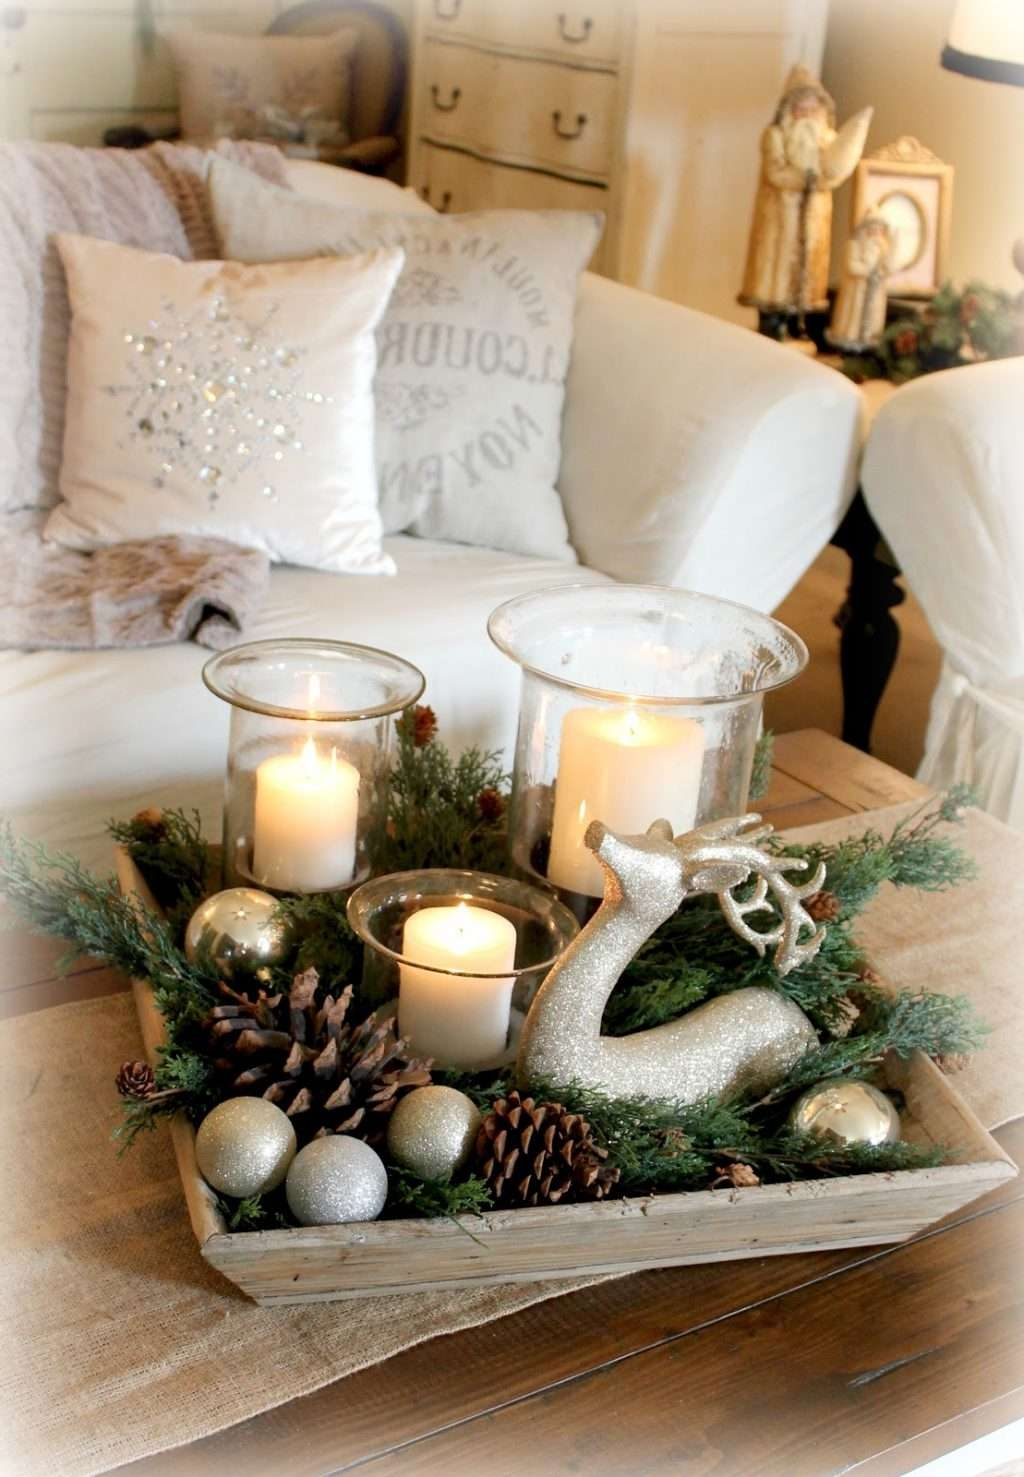 Rustic Christmas Table Decorations Rustic Christmas Coffee Table Throughout Fashionable Rustic Christmas Coffee Table Decors (View 16 of 20)